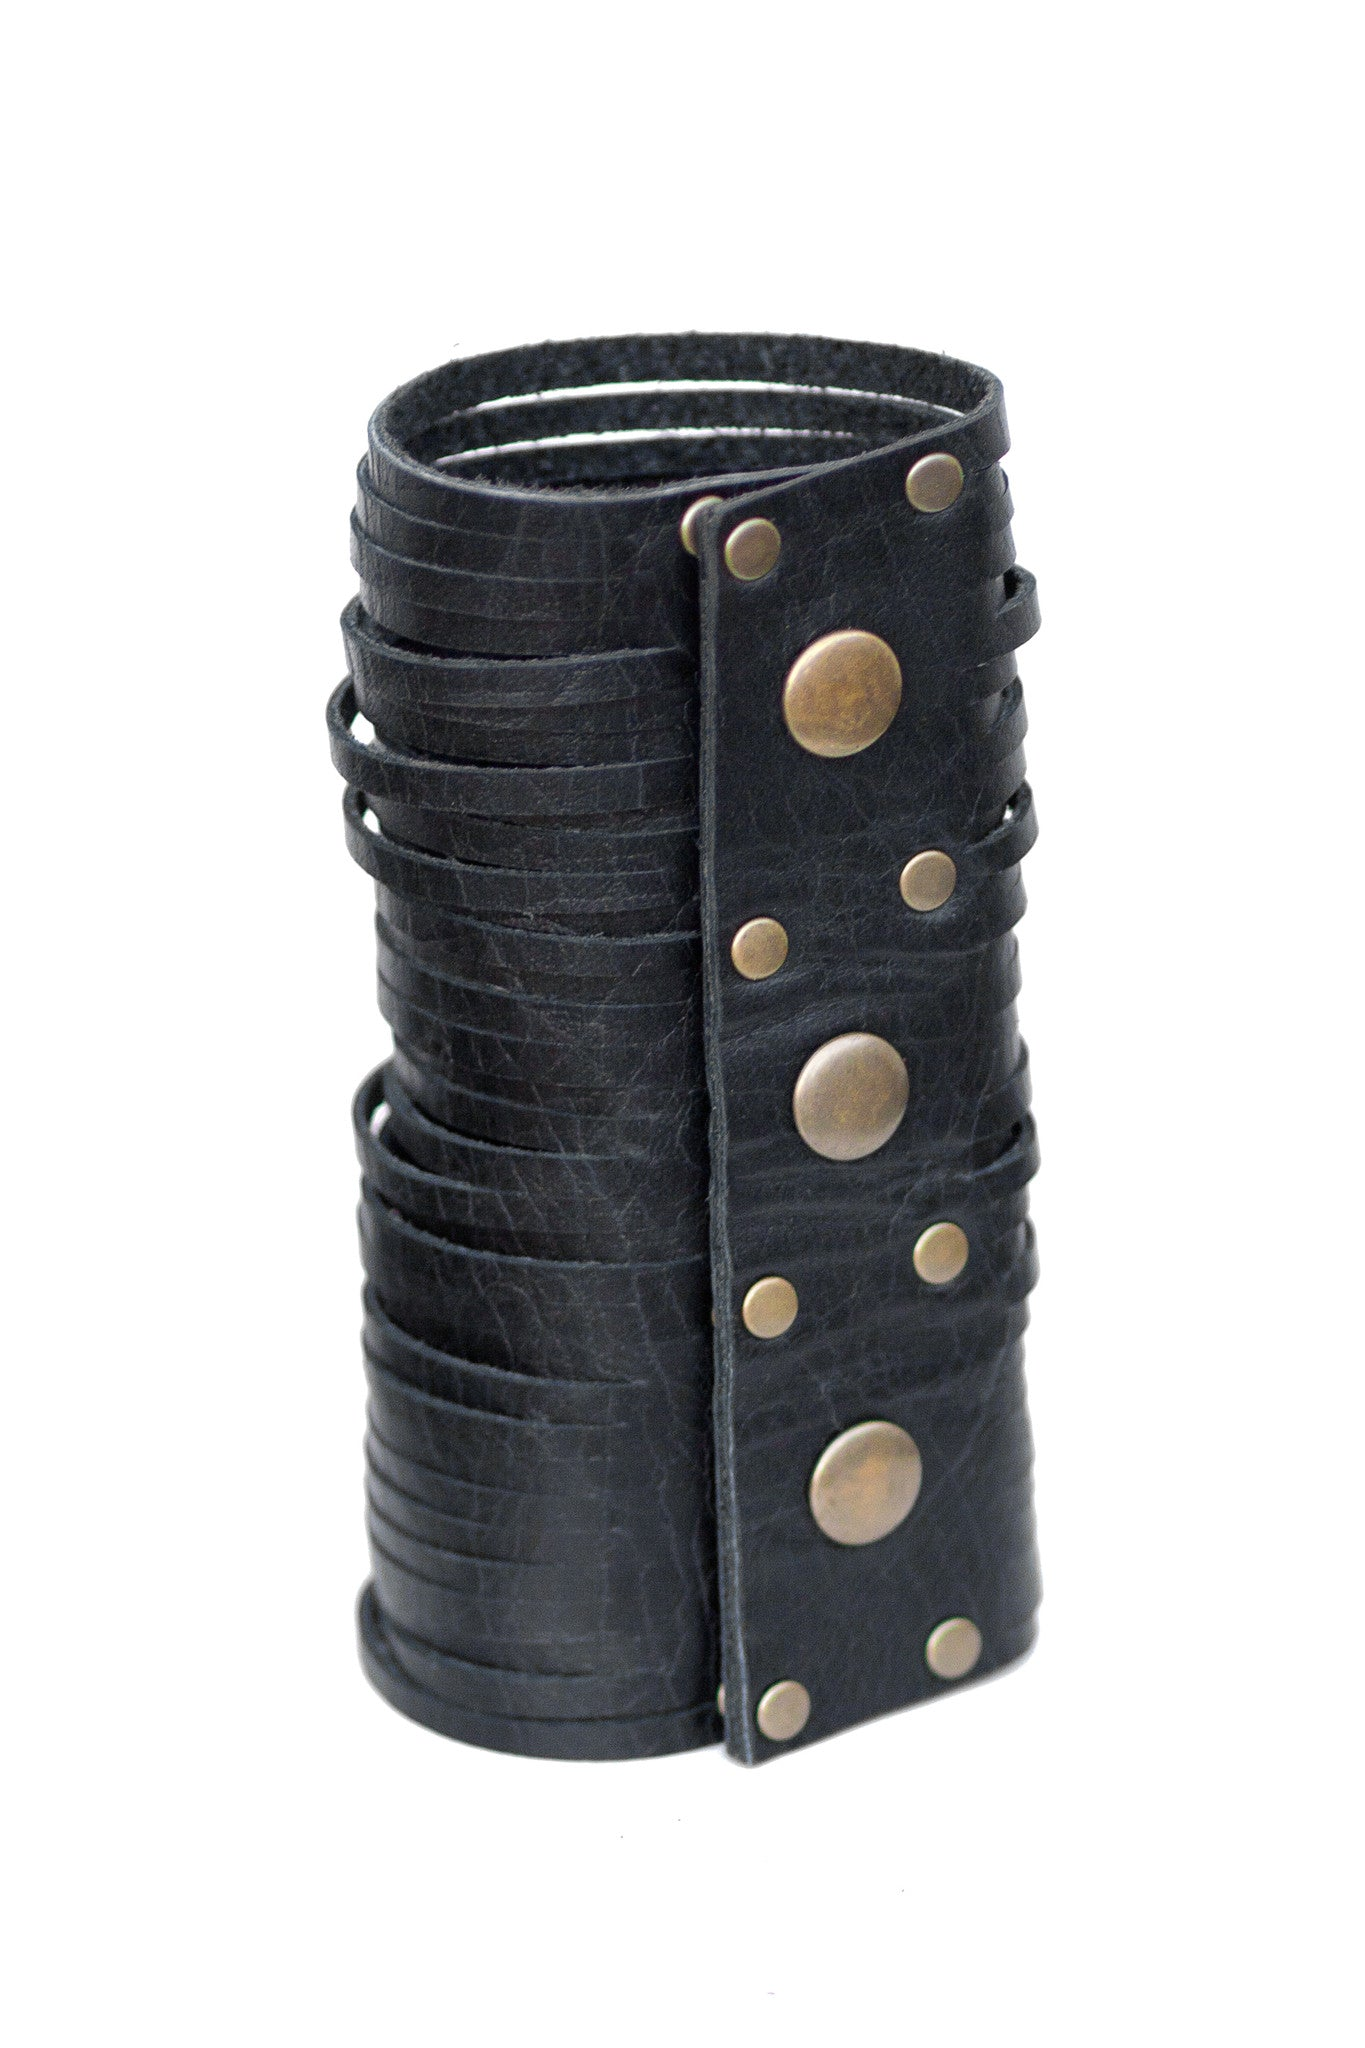 Warrior Cuff - JAKIMAC  - 1